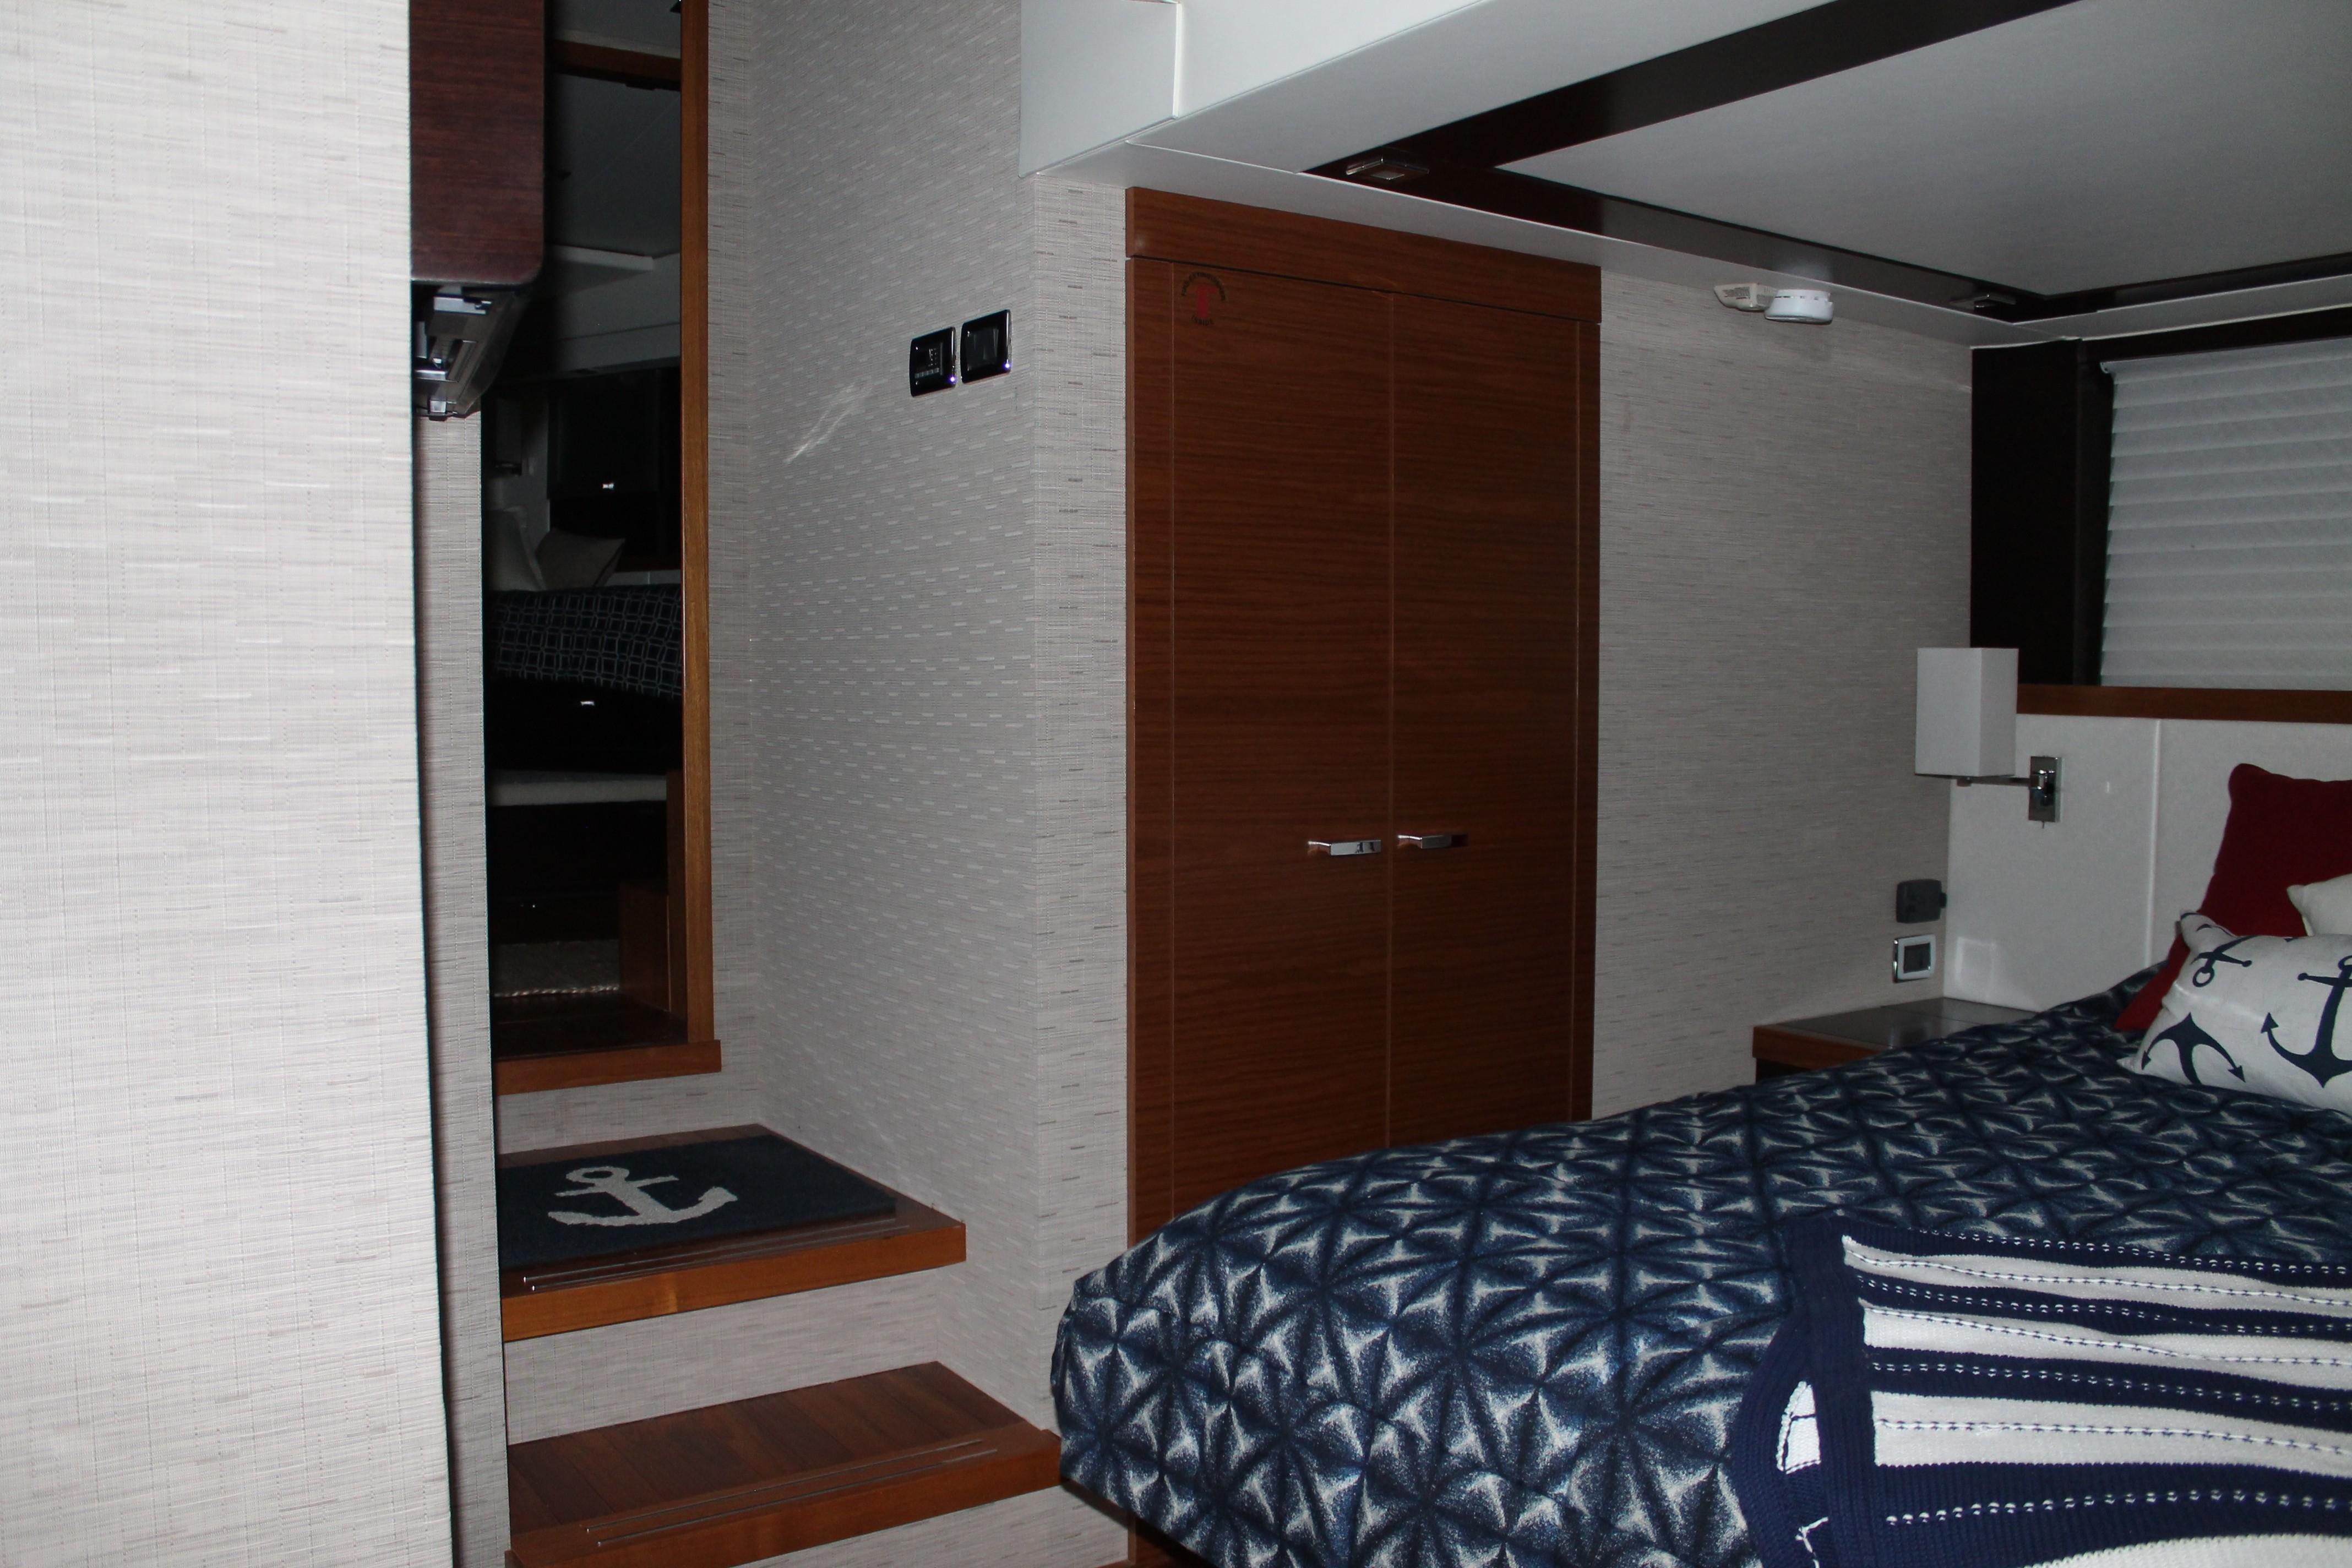 Owner Stateroom 3